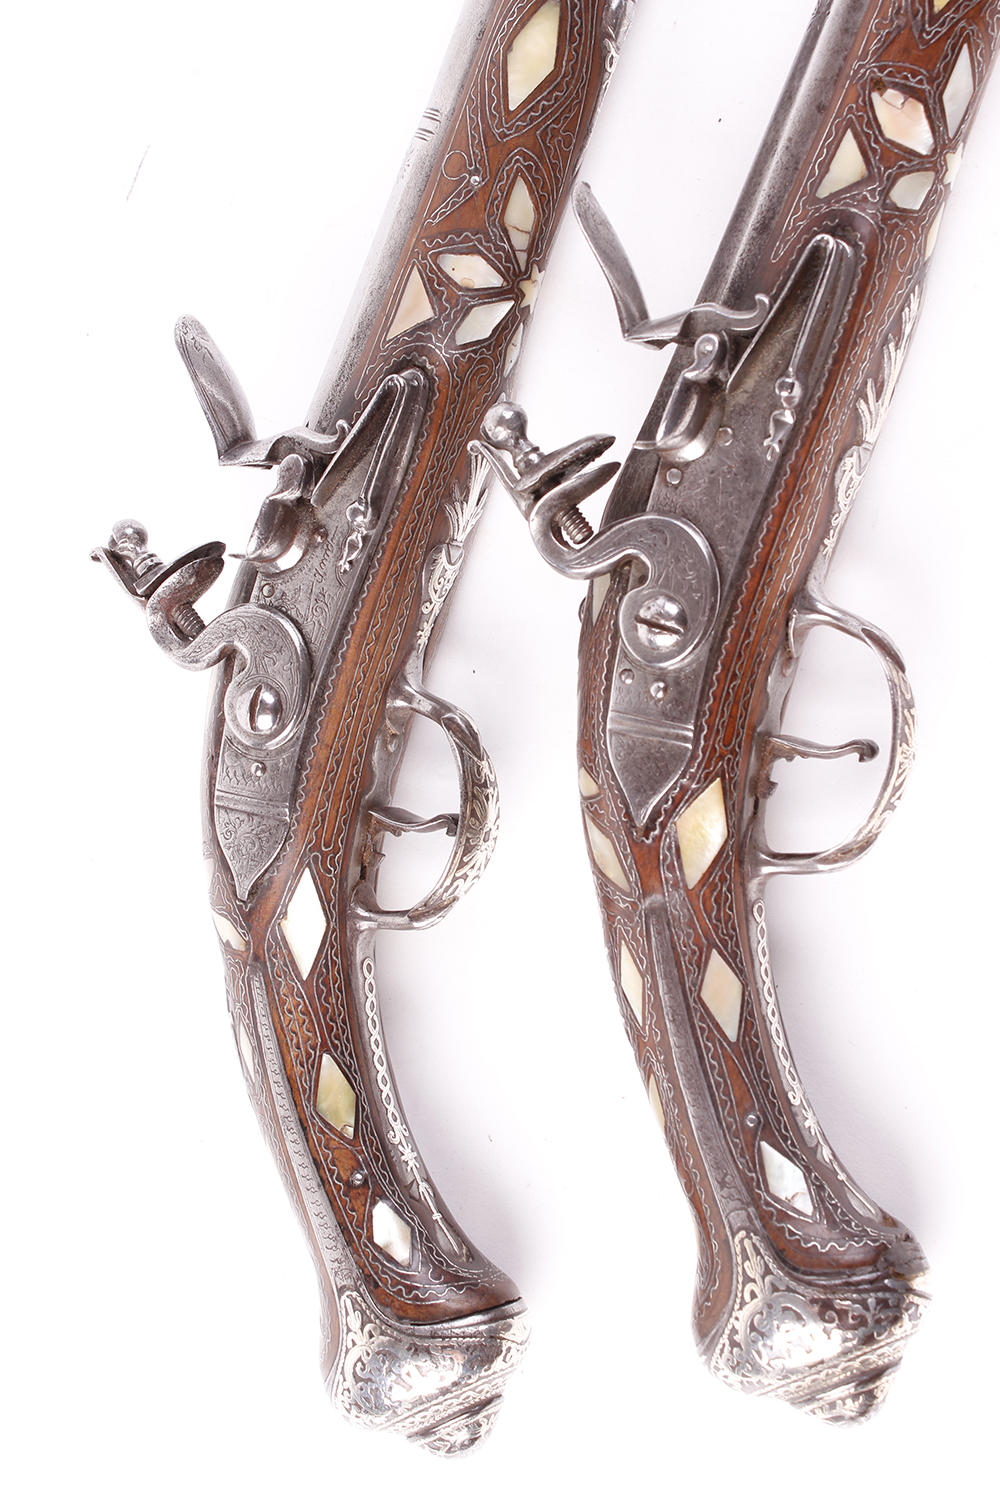 Lot 625 - (S58) Pair of 18 bore Spanish holster pistols with 11 ins full stocked two stage barrel, engraved